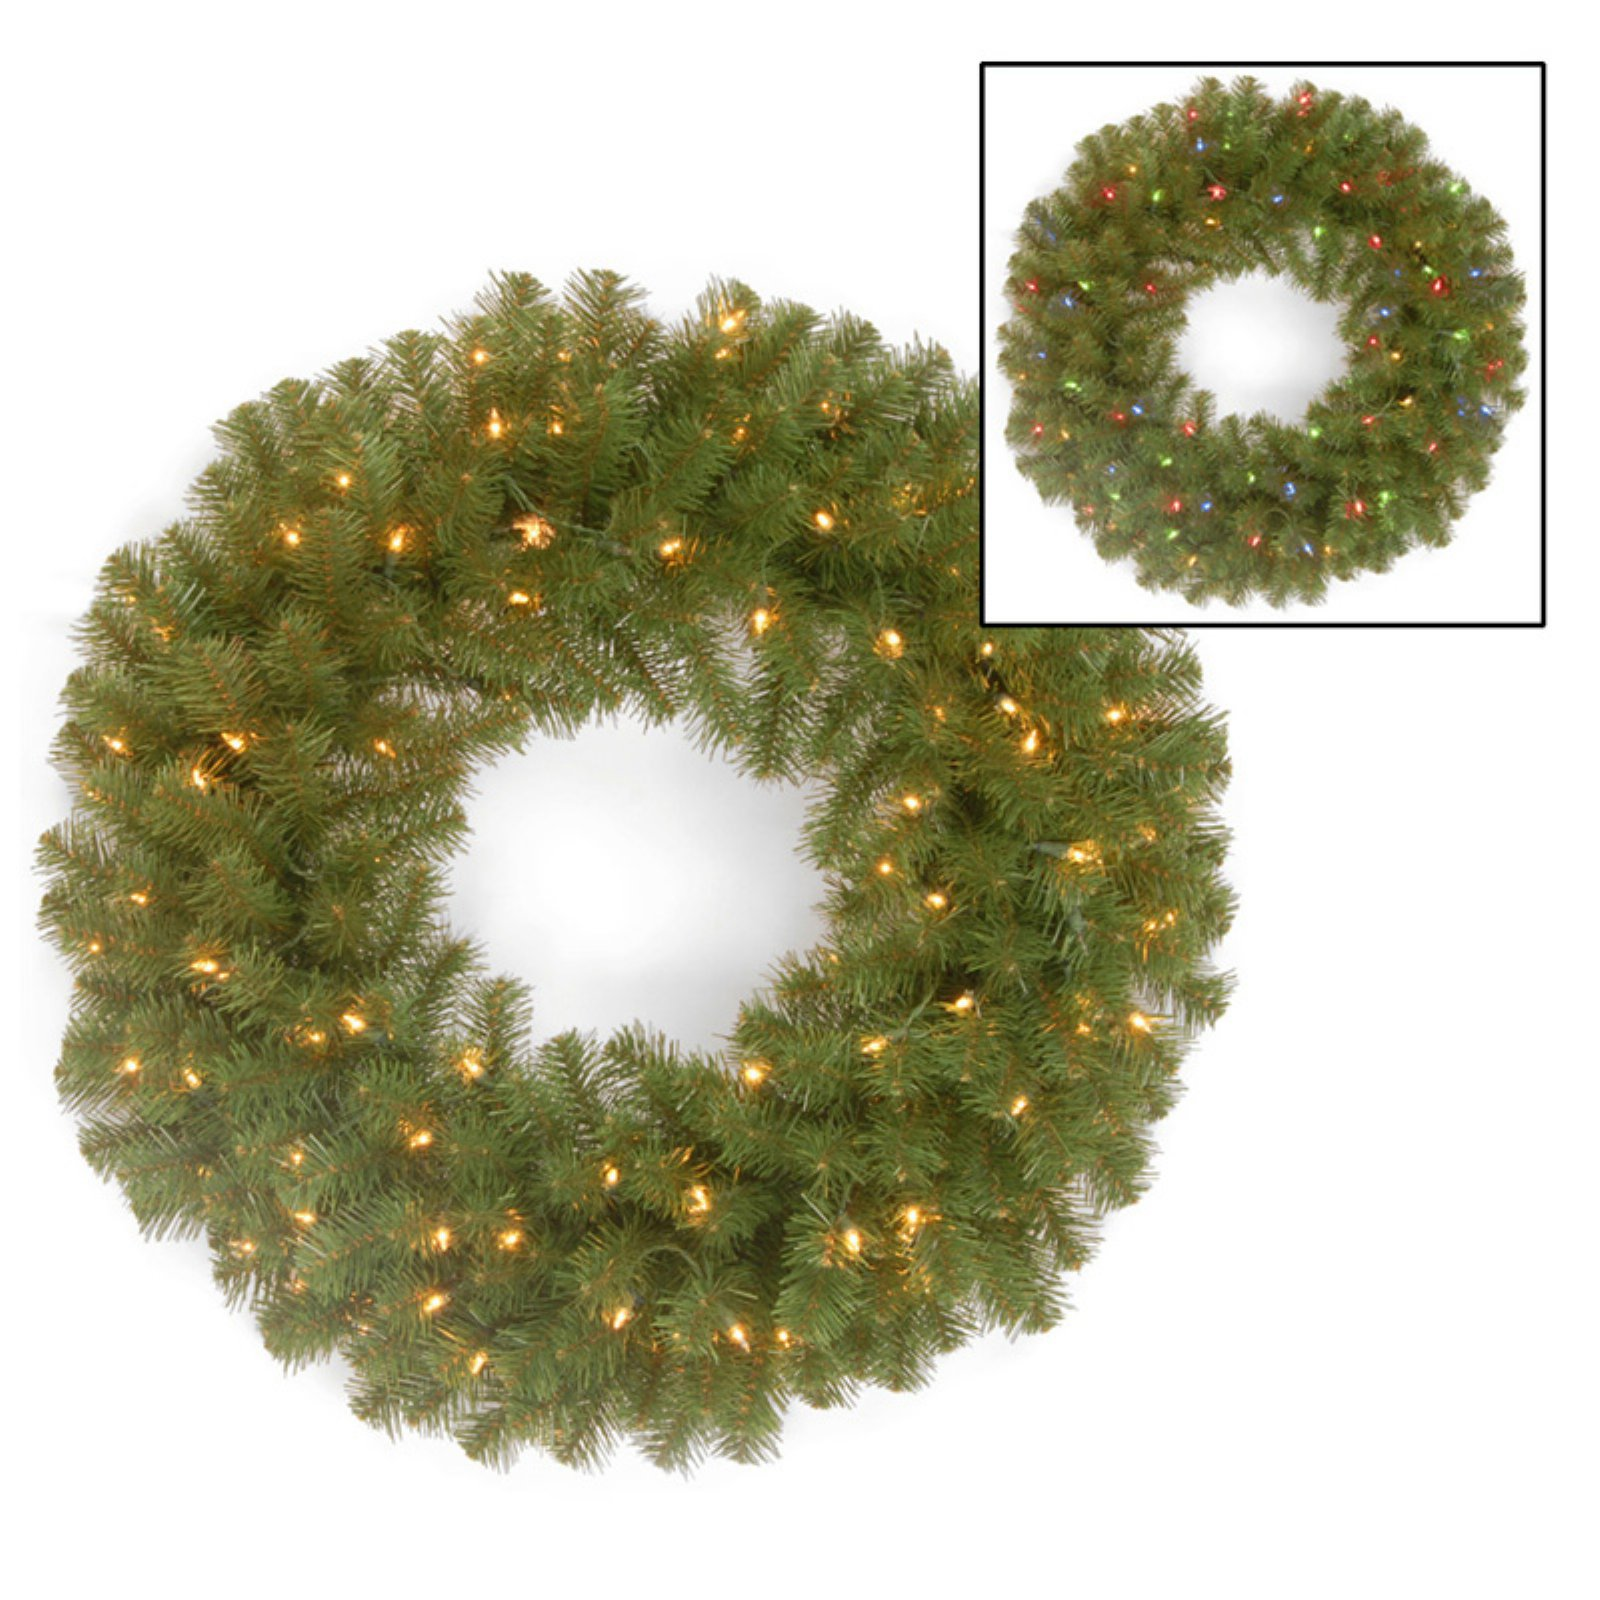 24 in. North Valley Spruce Pre-Lit Battery Operated Dual LED Wreath